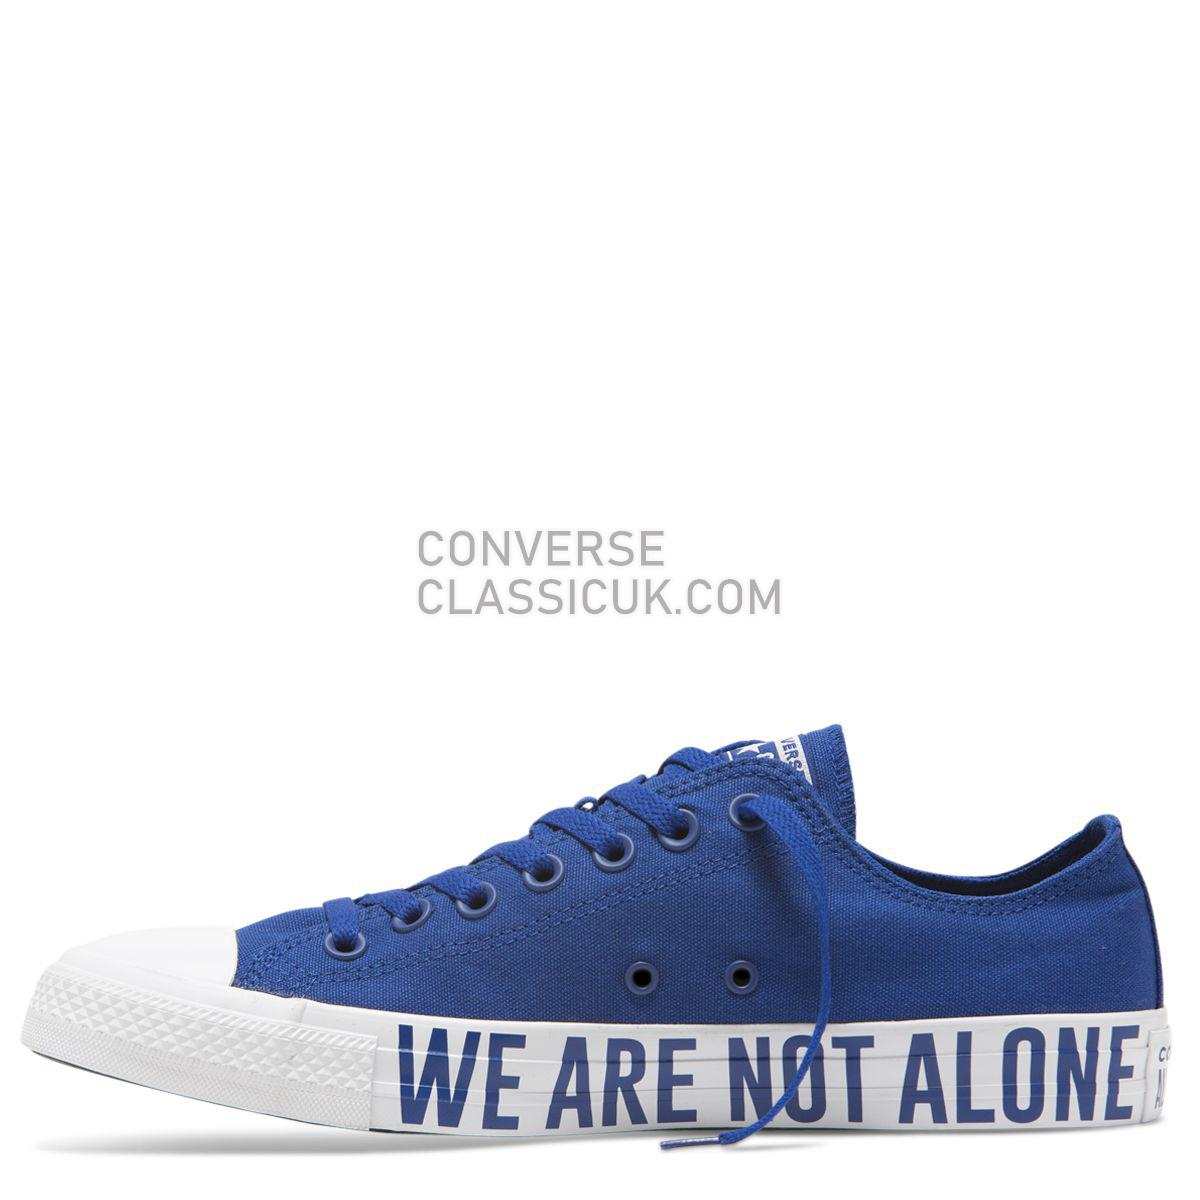 Converse Chuck Taylor All Star We Are Not Alone Low Top Blue Mens Womens Unisex 165383 Blue/Black/Blue Shoes